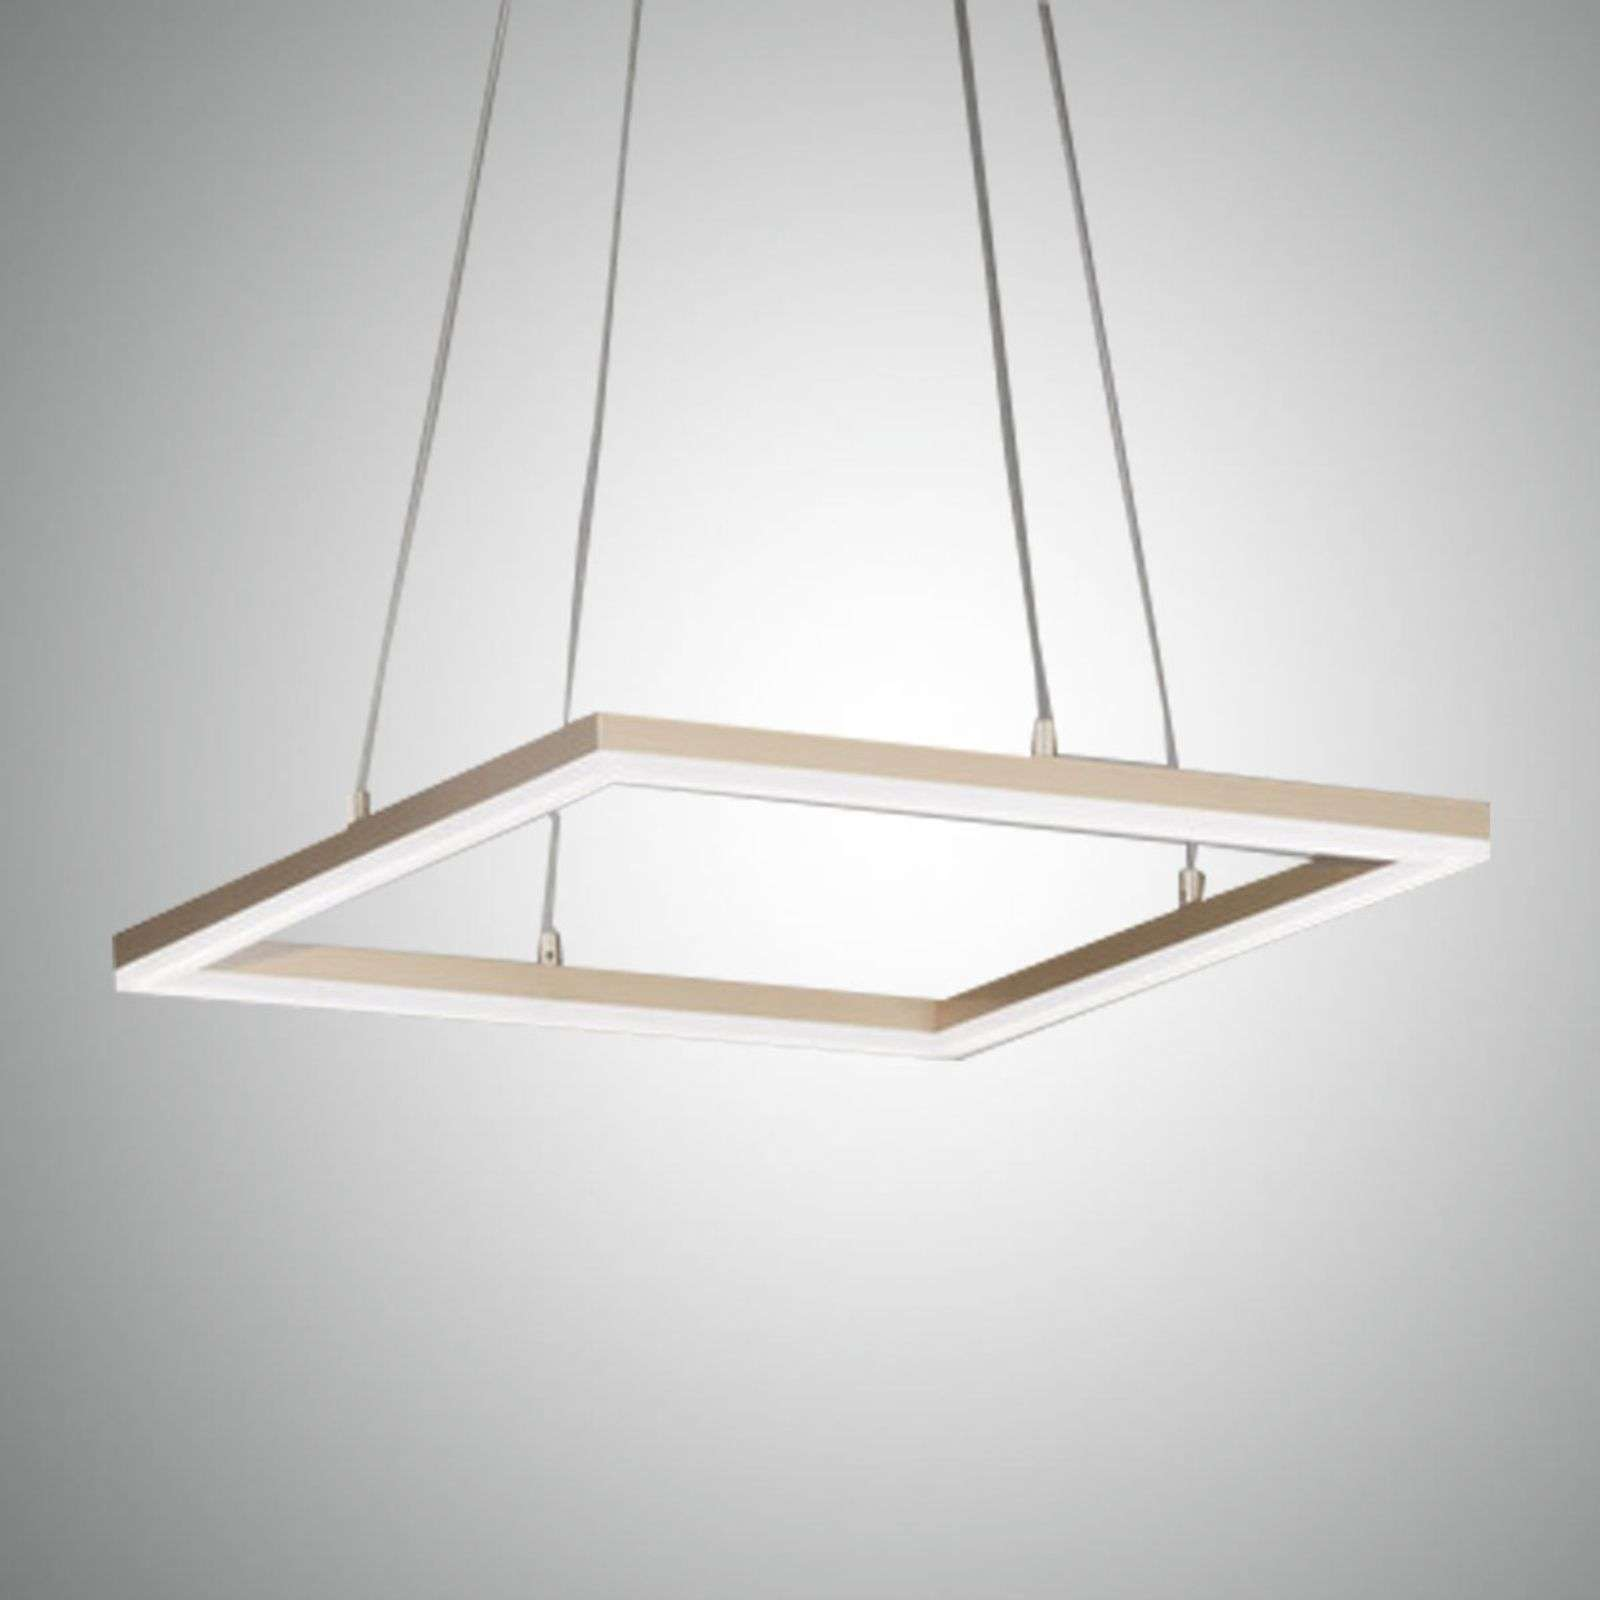 Suspension LED Bard 42x42 cm en finition doré mat